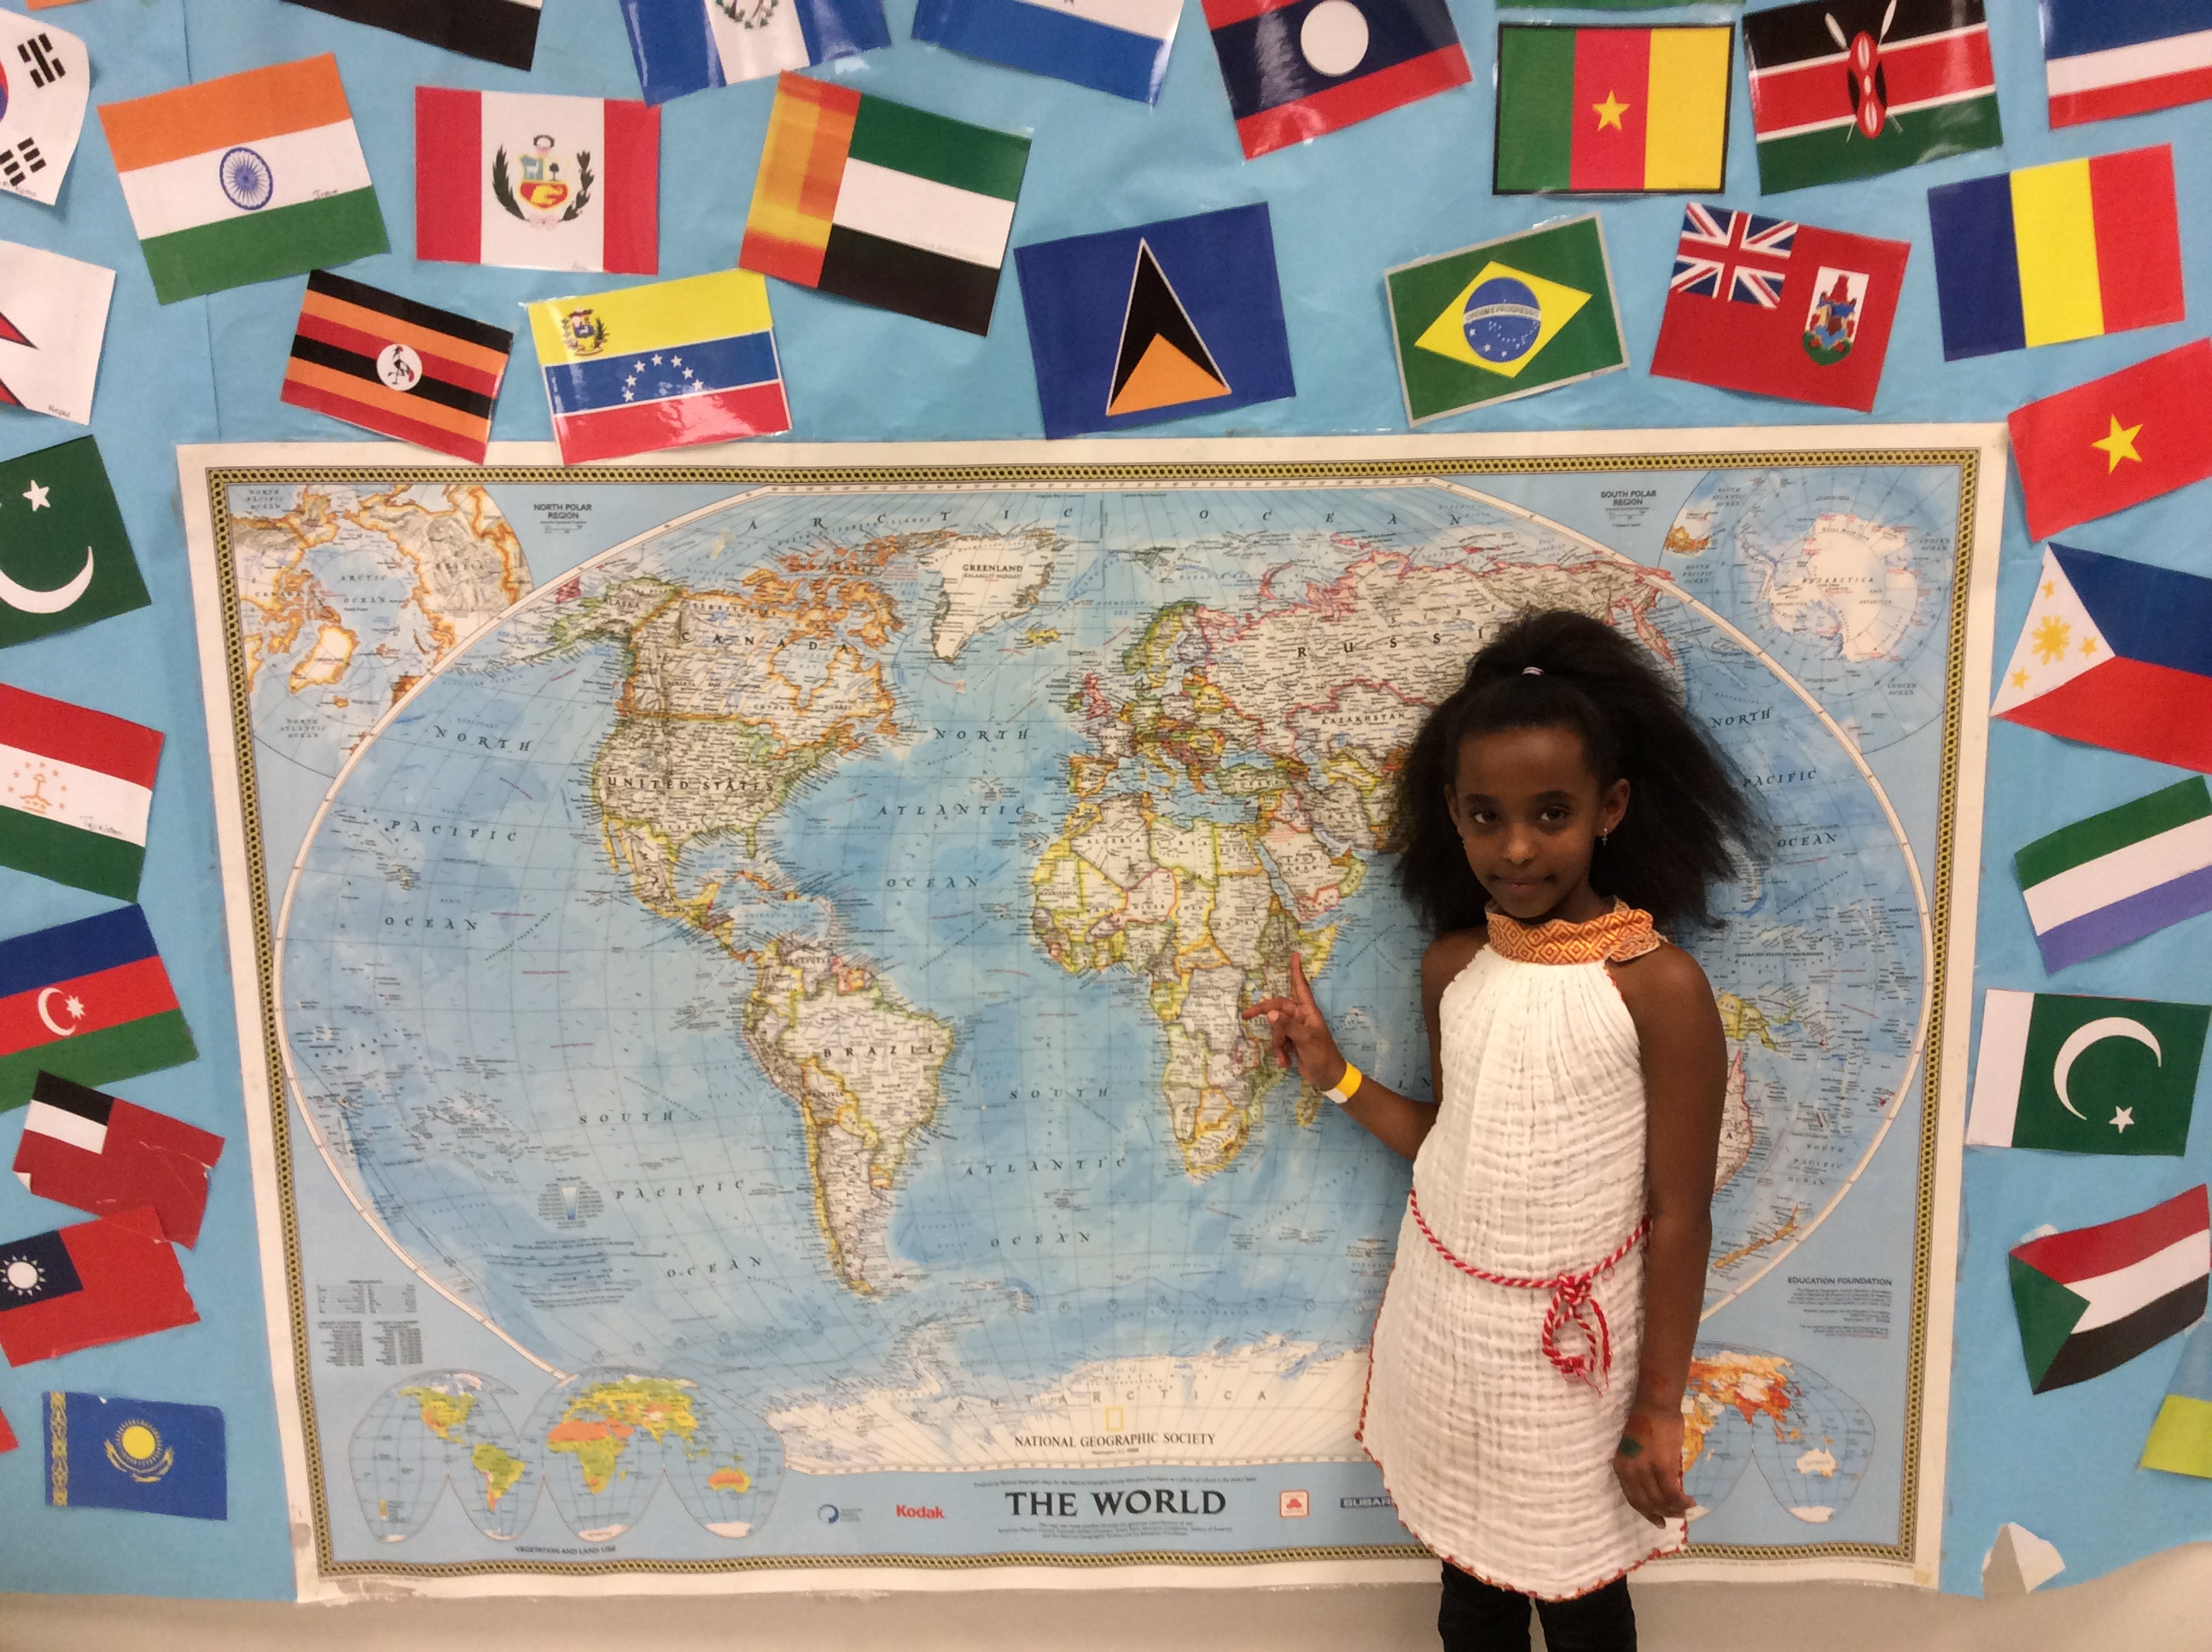 Multicultural Night, Thursday, February 23rd, 6:30-8:30